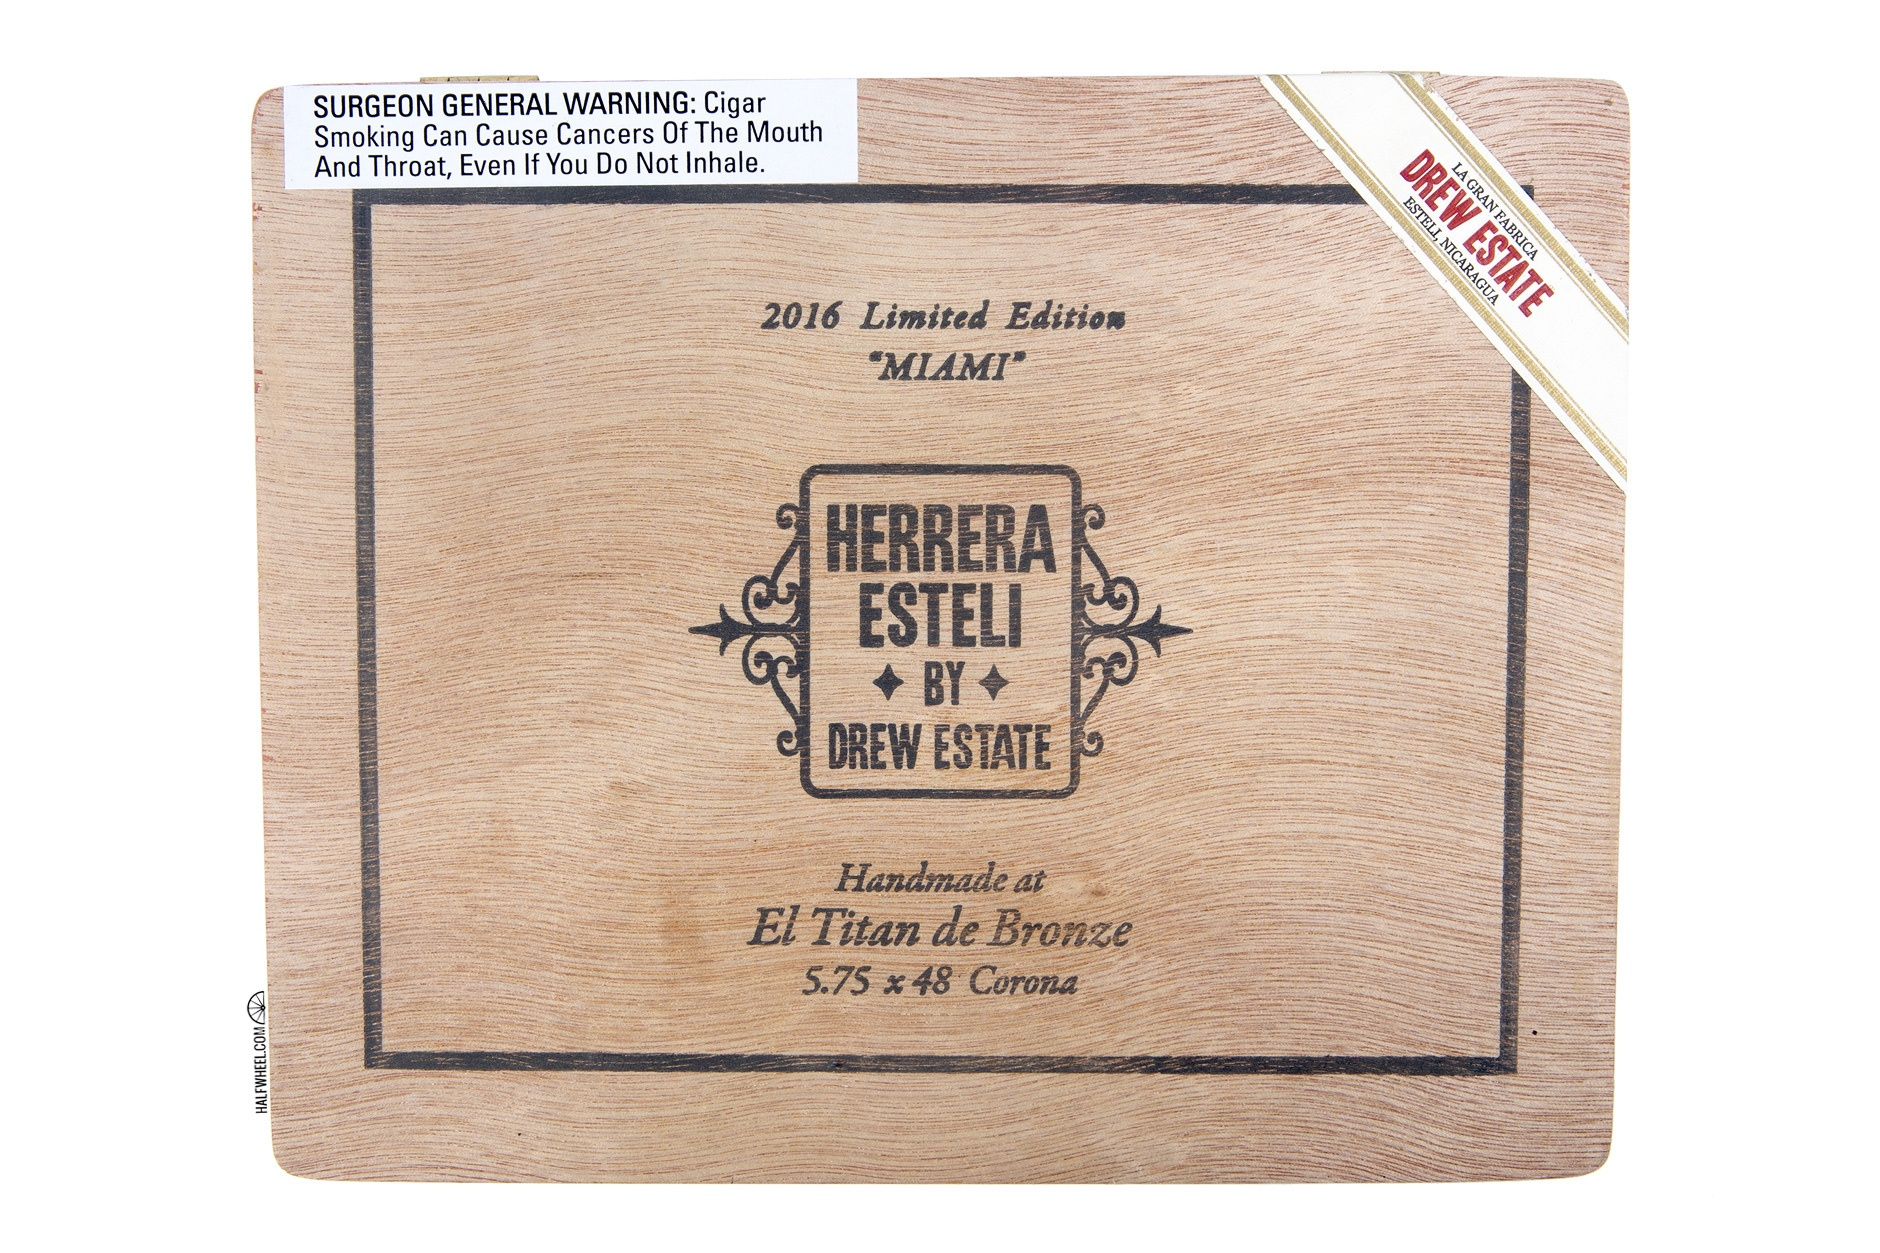 herreraesteli_miami_review_box